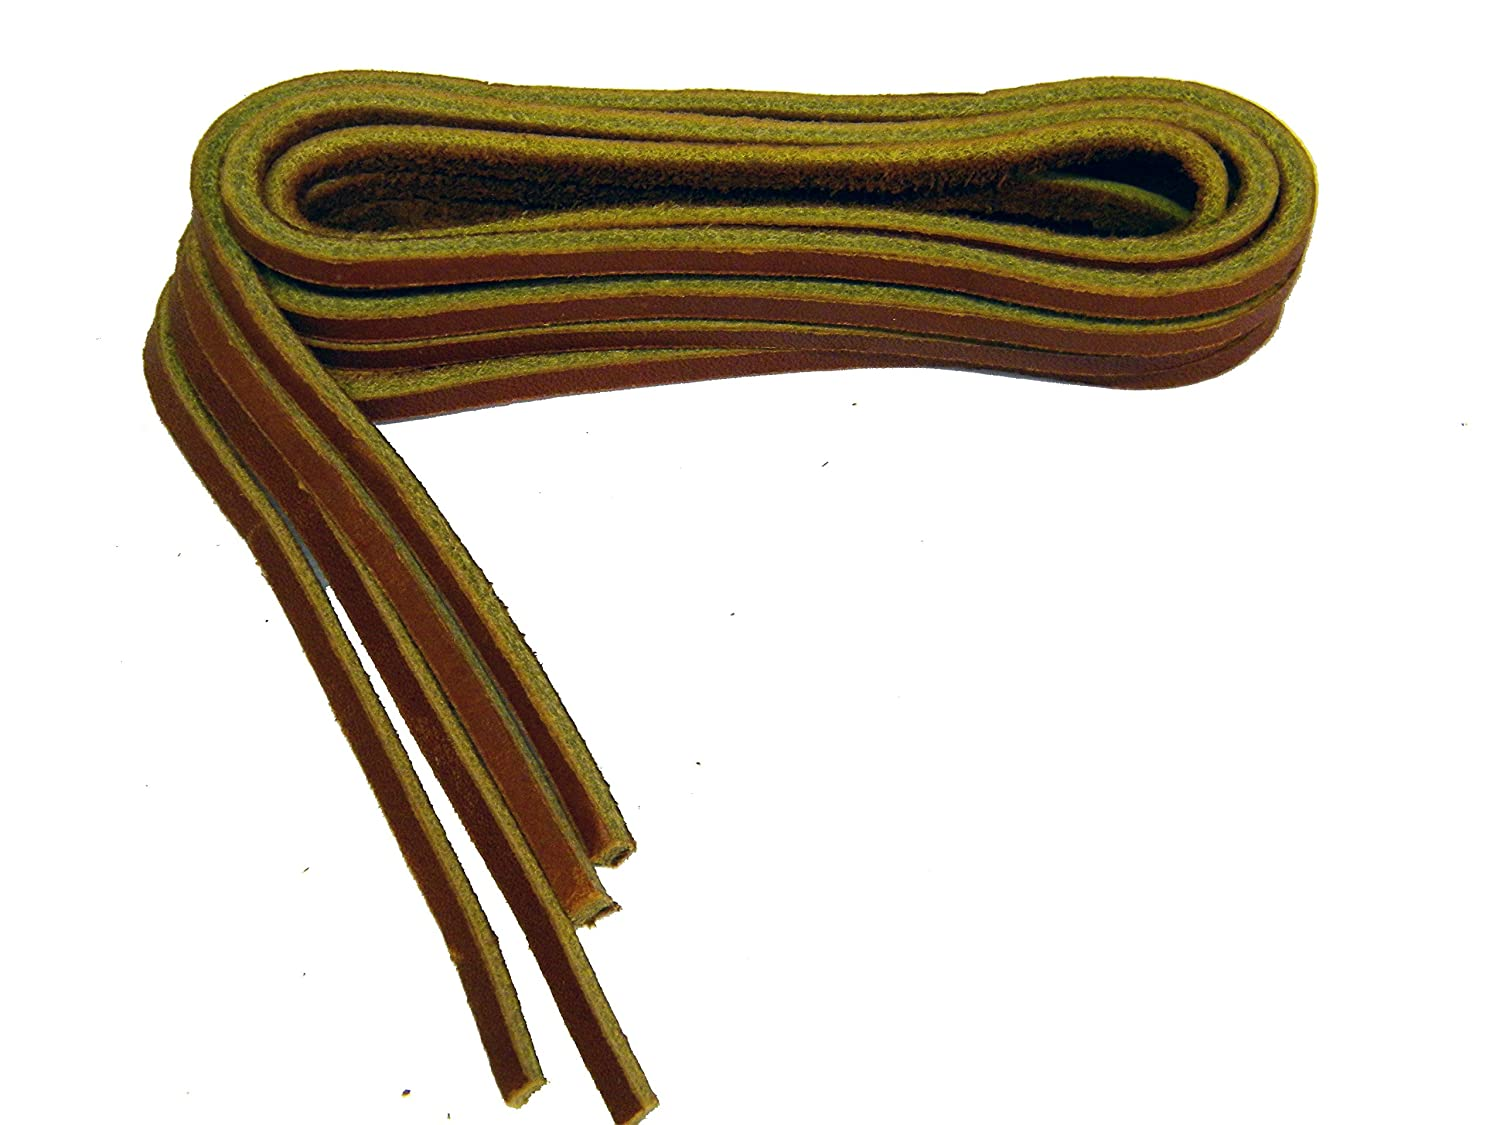 Tan Rawhide Leather Laces for Boots and Quality Footwear 1/8 Inch Square Cut Rawhide (48 Inch)